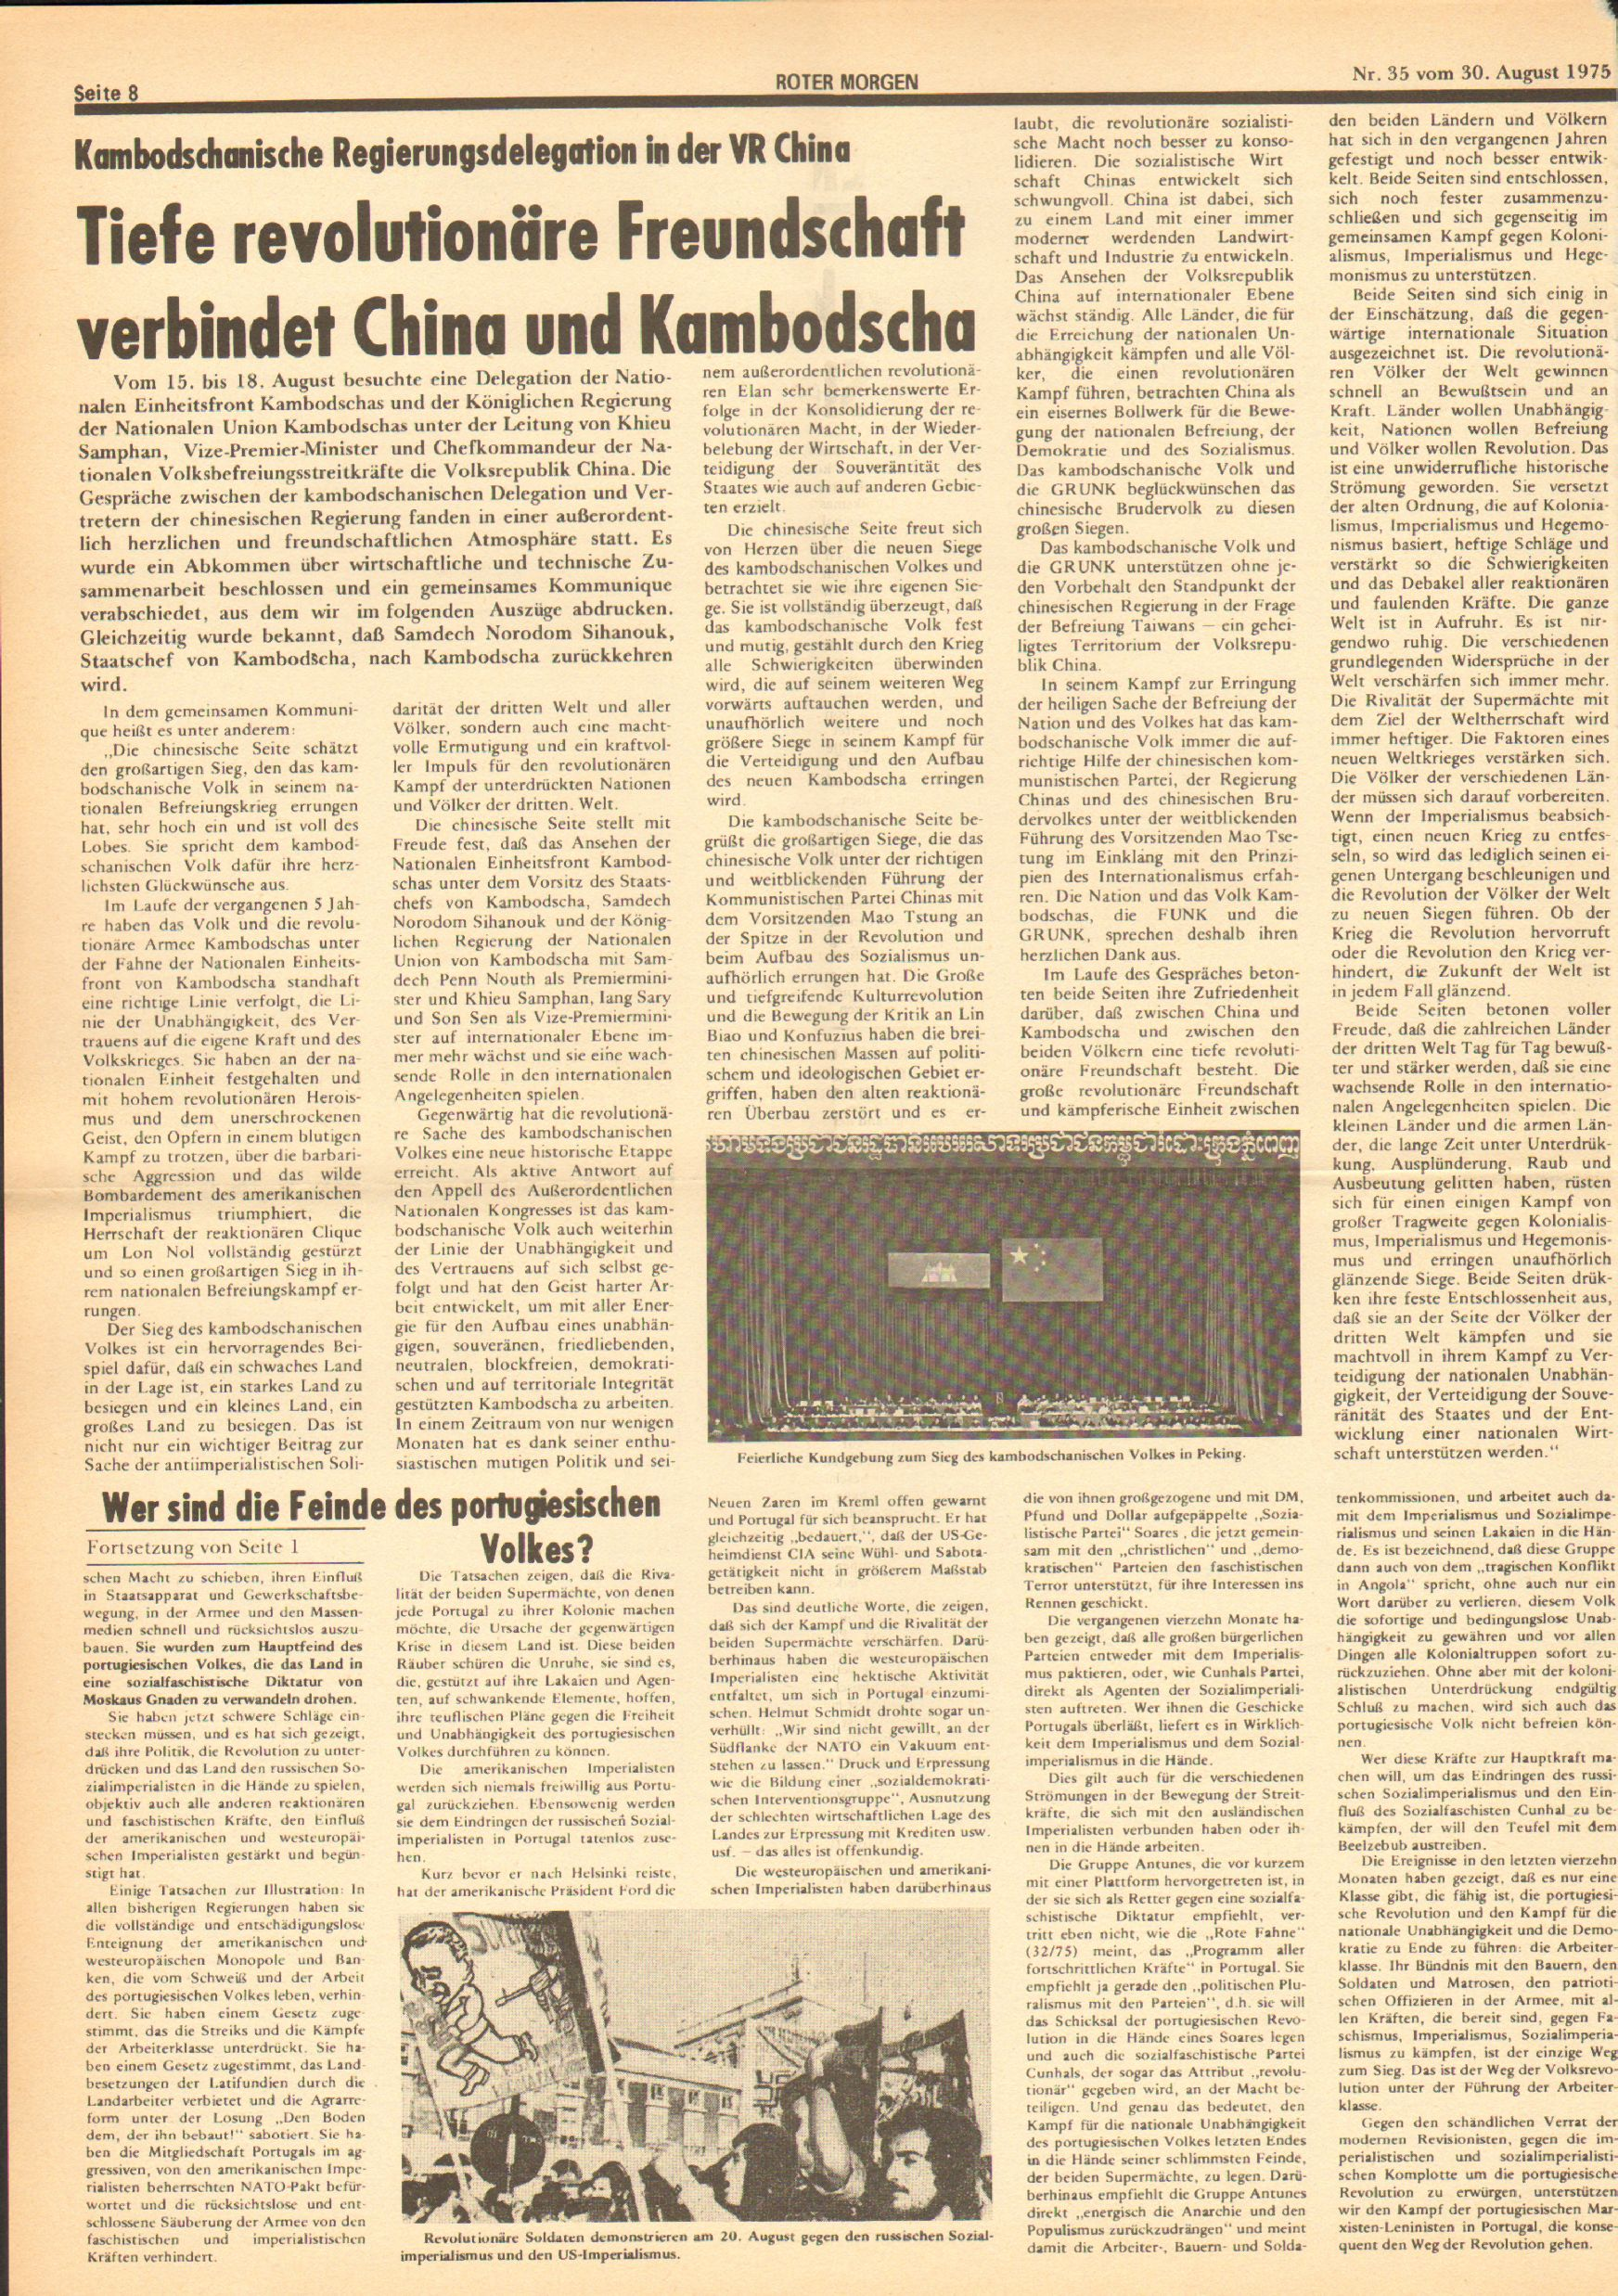 Roter Morgen, 9. Jg., 30. August 1975, Nr. 35, Seite 8